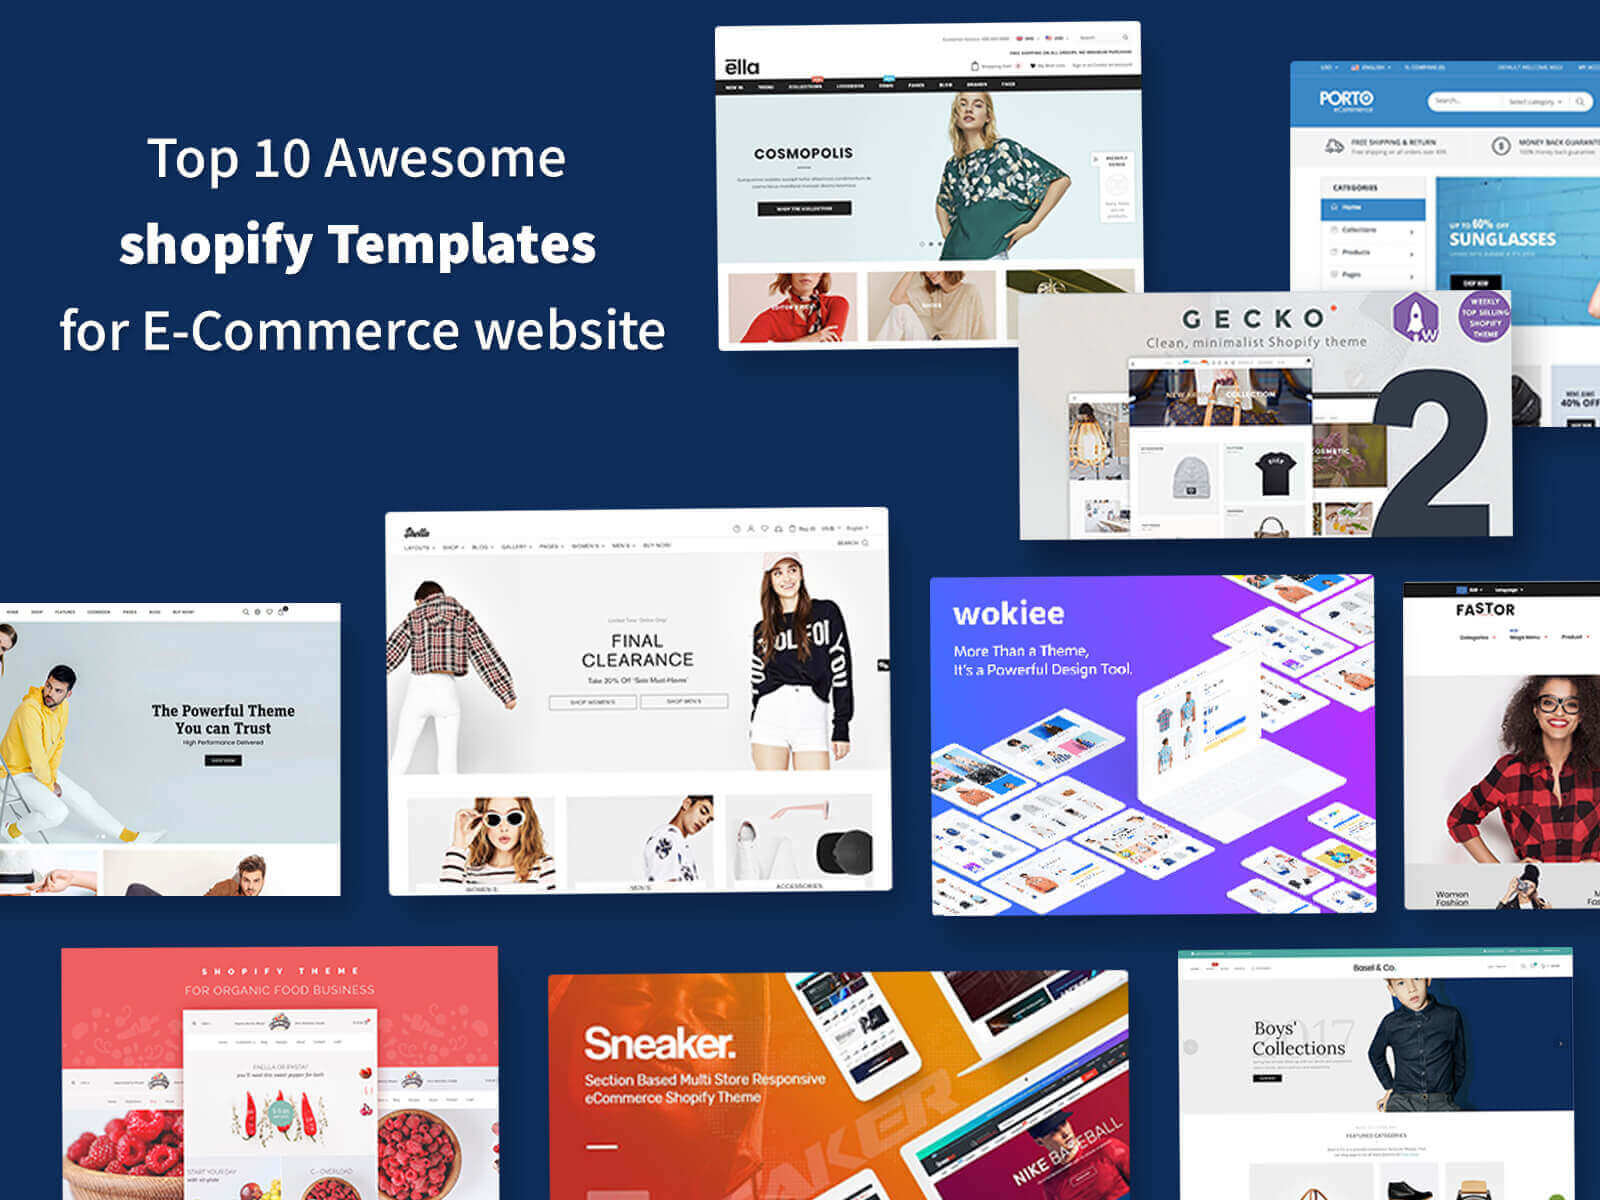 Shopify Templates for E-Commerce website